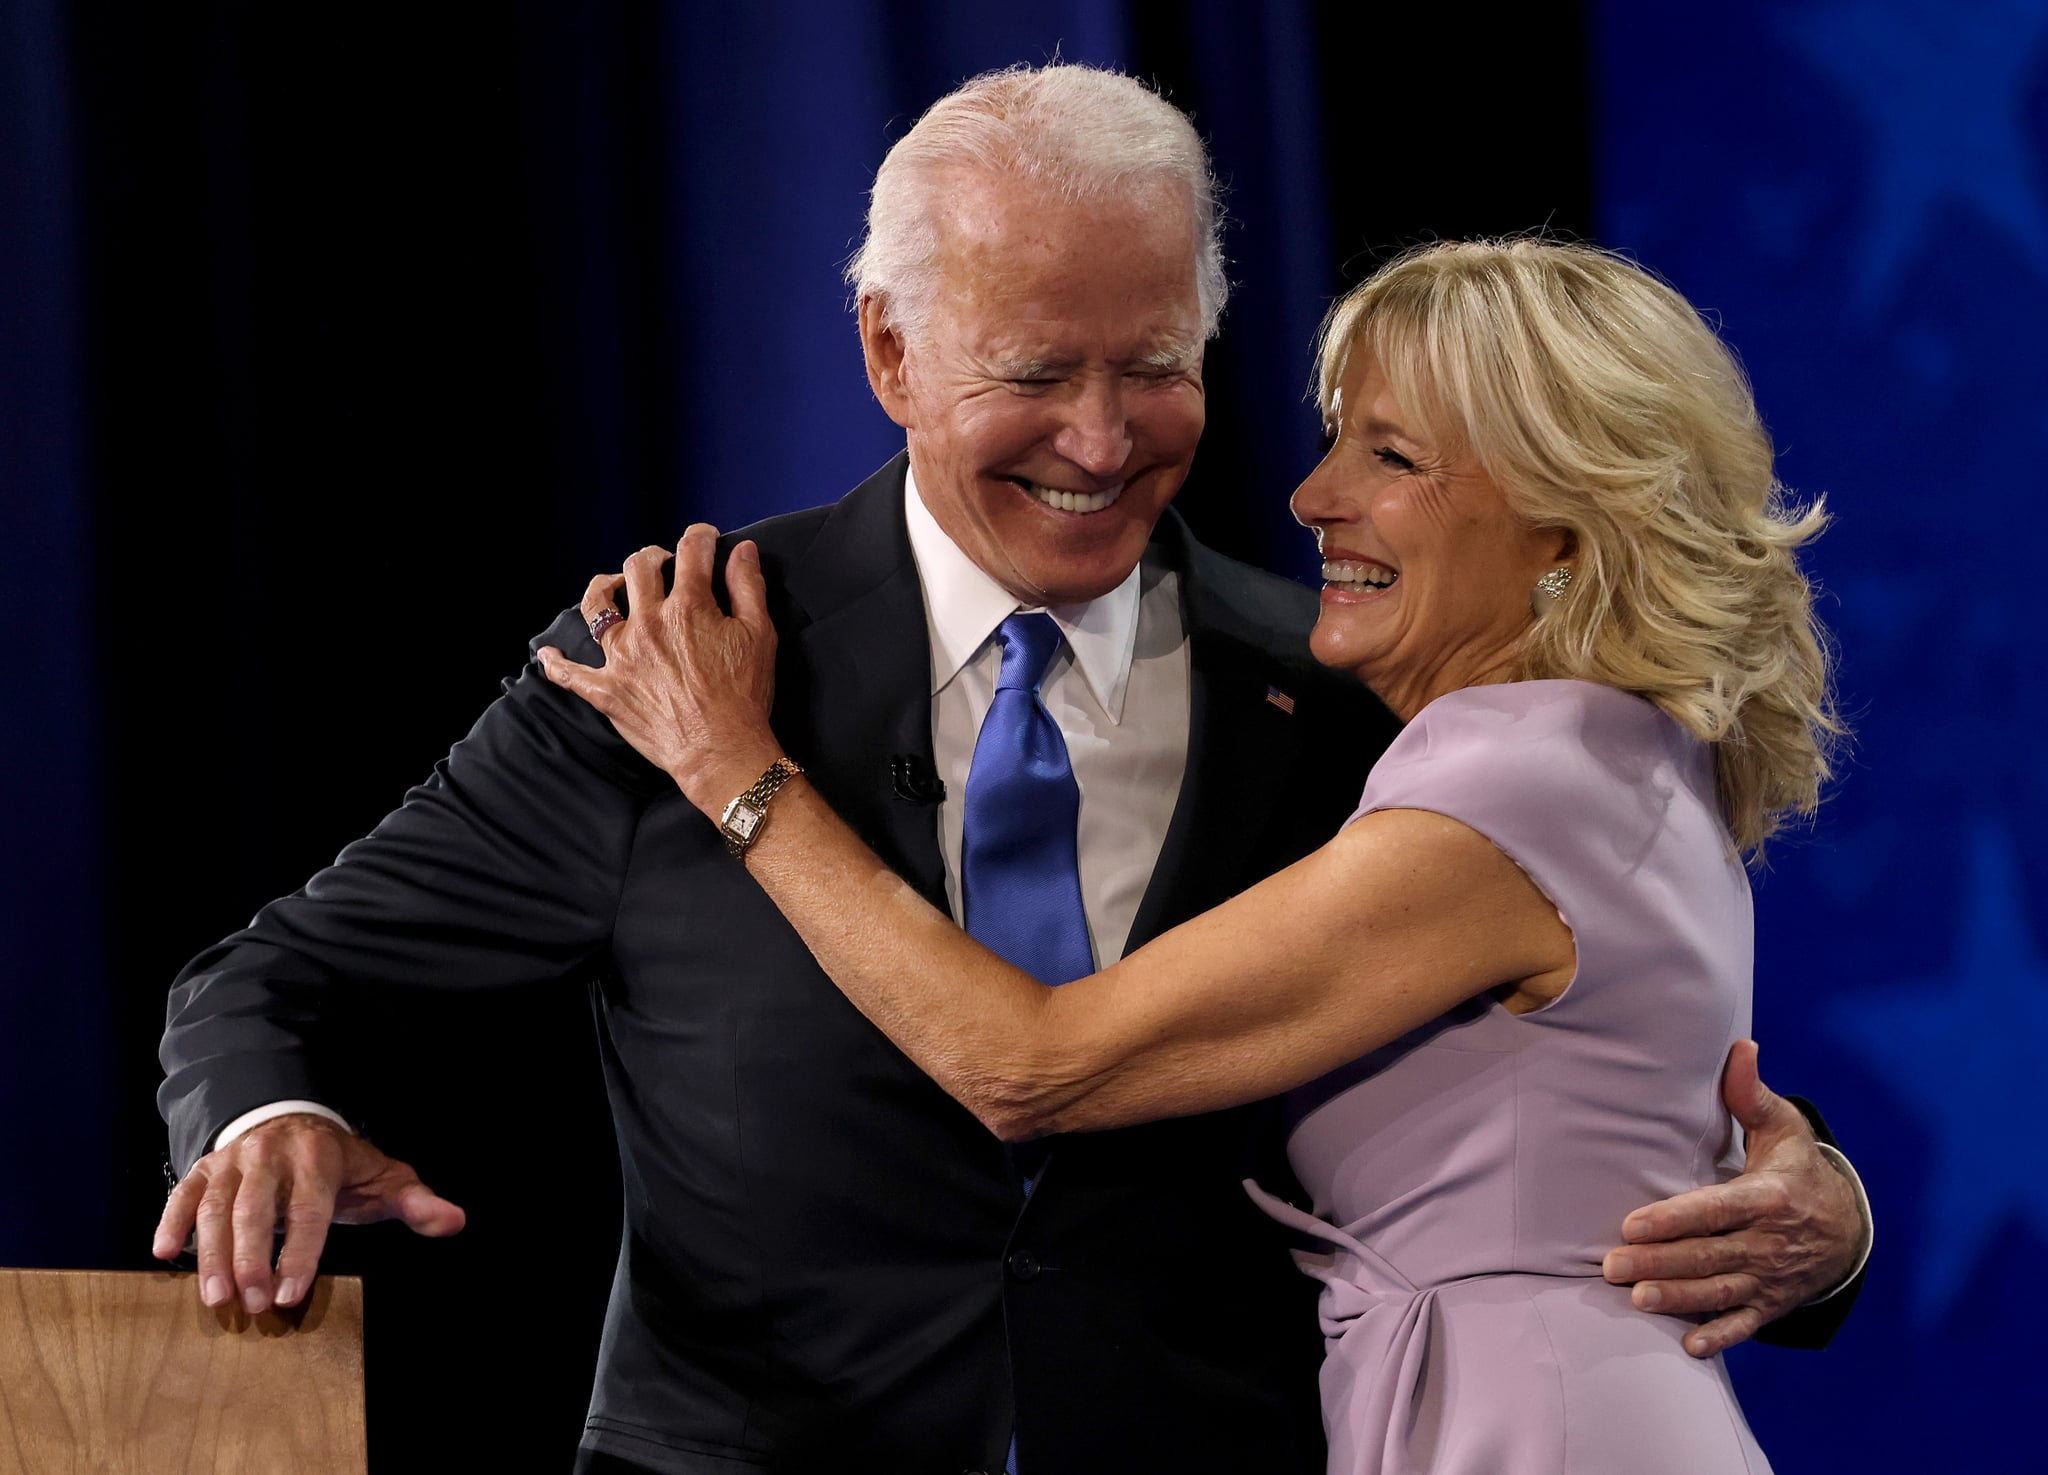 WILMINGTON, DELAWARE - AUGUST 20: : Democratic presidential nominee Joe Biden greets his wife Dr. Jill Biden on the fourth night of the Democratic National Convention from the Chase Centre on August 20, 2020 in Wilmington, Delaware. The convention, which was once expected to draw 50,000 people to Milwaukee, Wisconsin, is now taking place virtually due to the coronavirus pandemic. (Photo by Win McNamee/Getty Images)